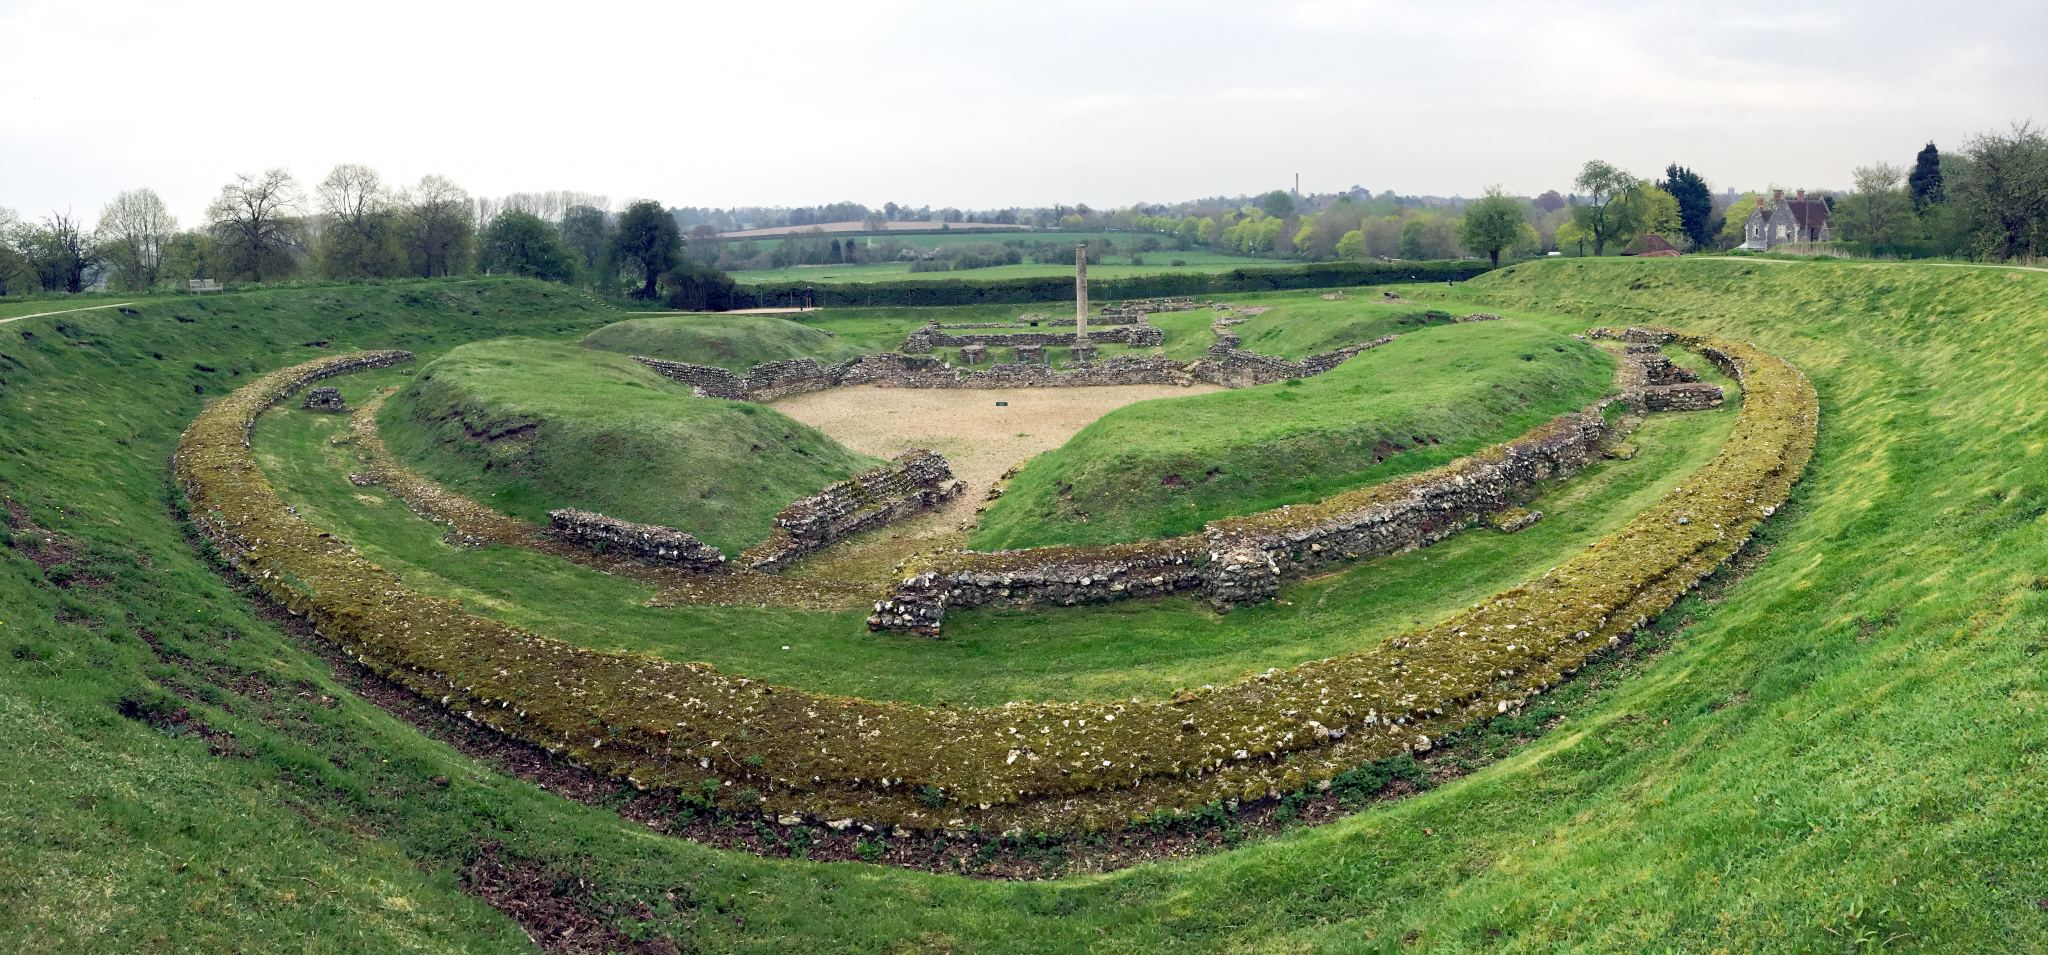 Exploring the Roman ruins of St Albans